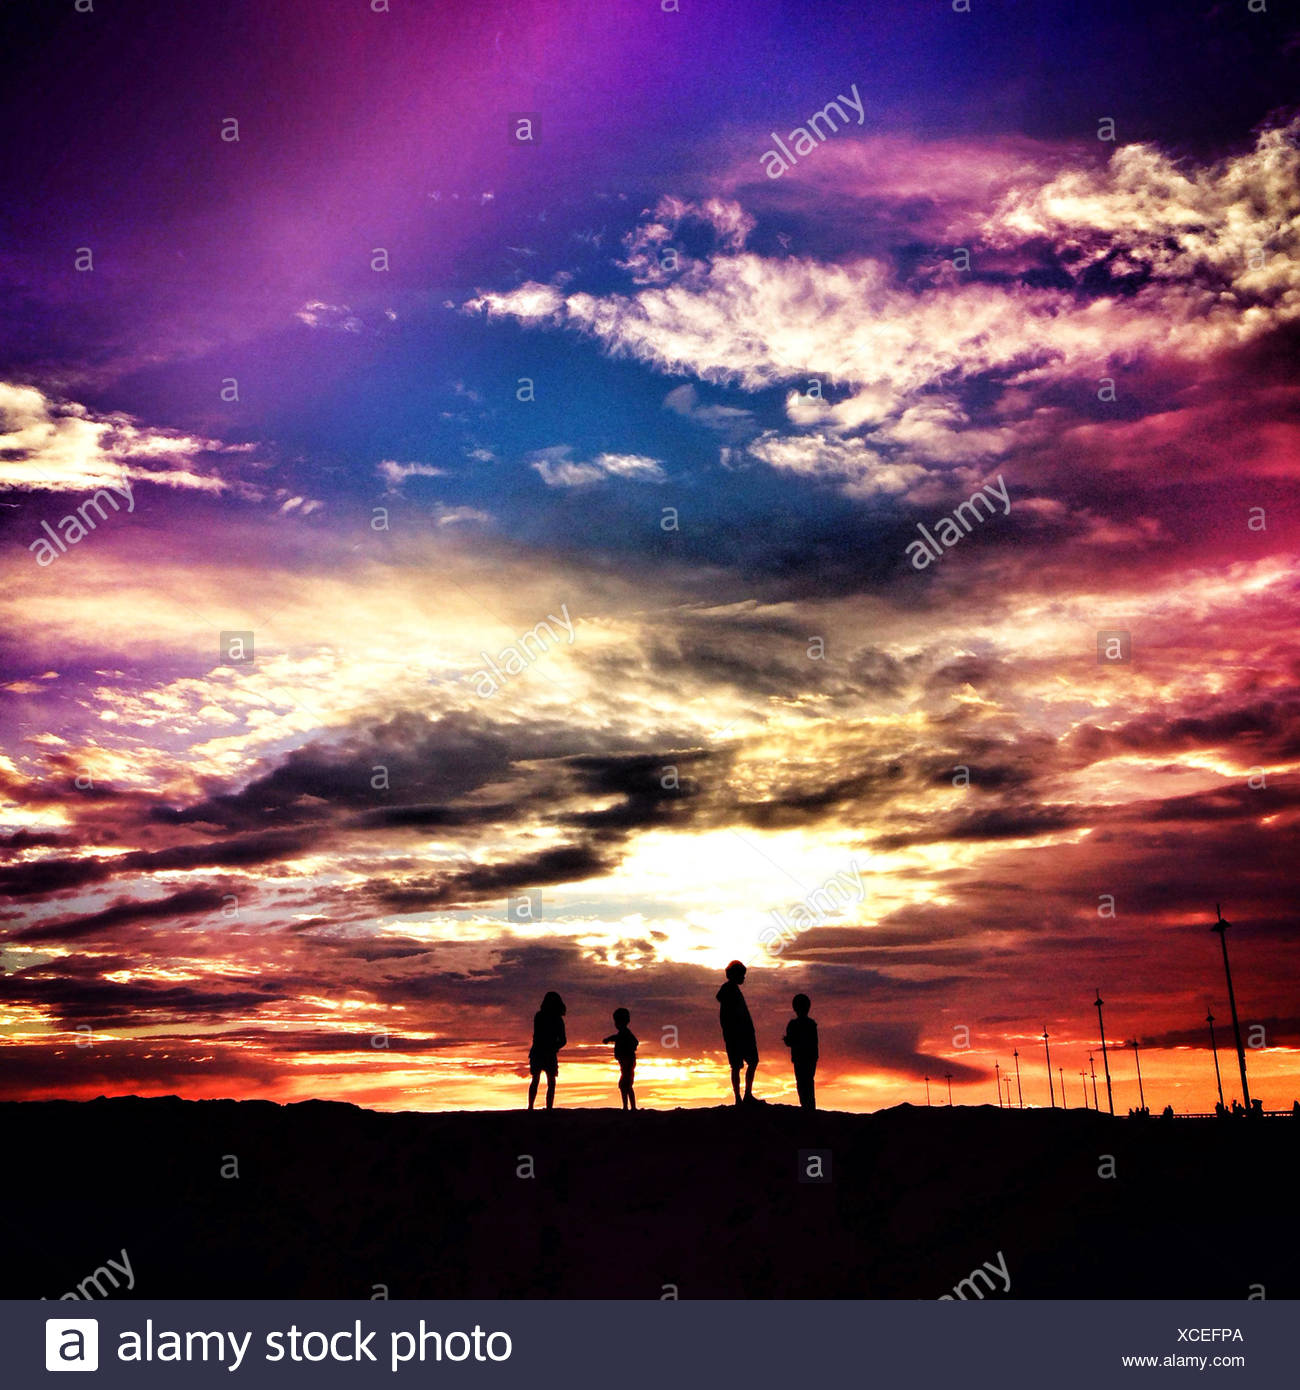 Silhouette of four children at sunset - Stock Image